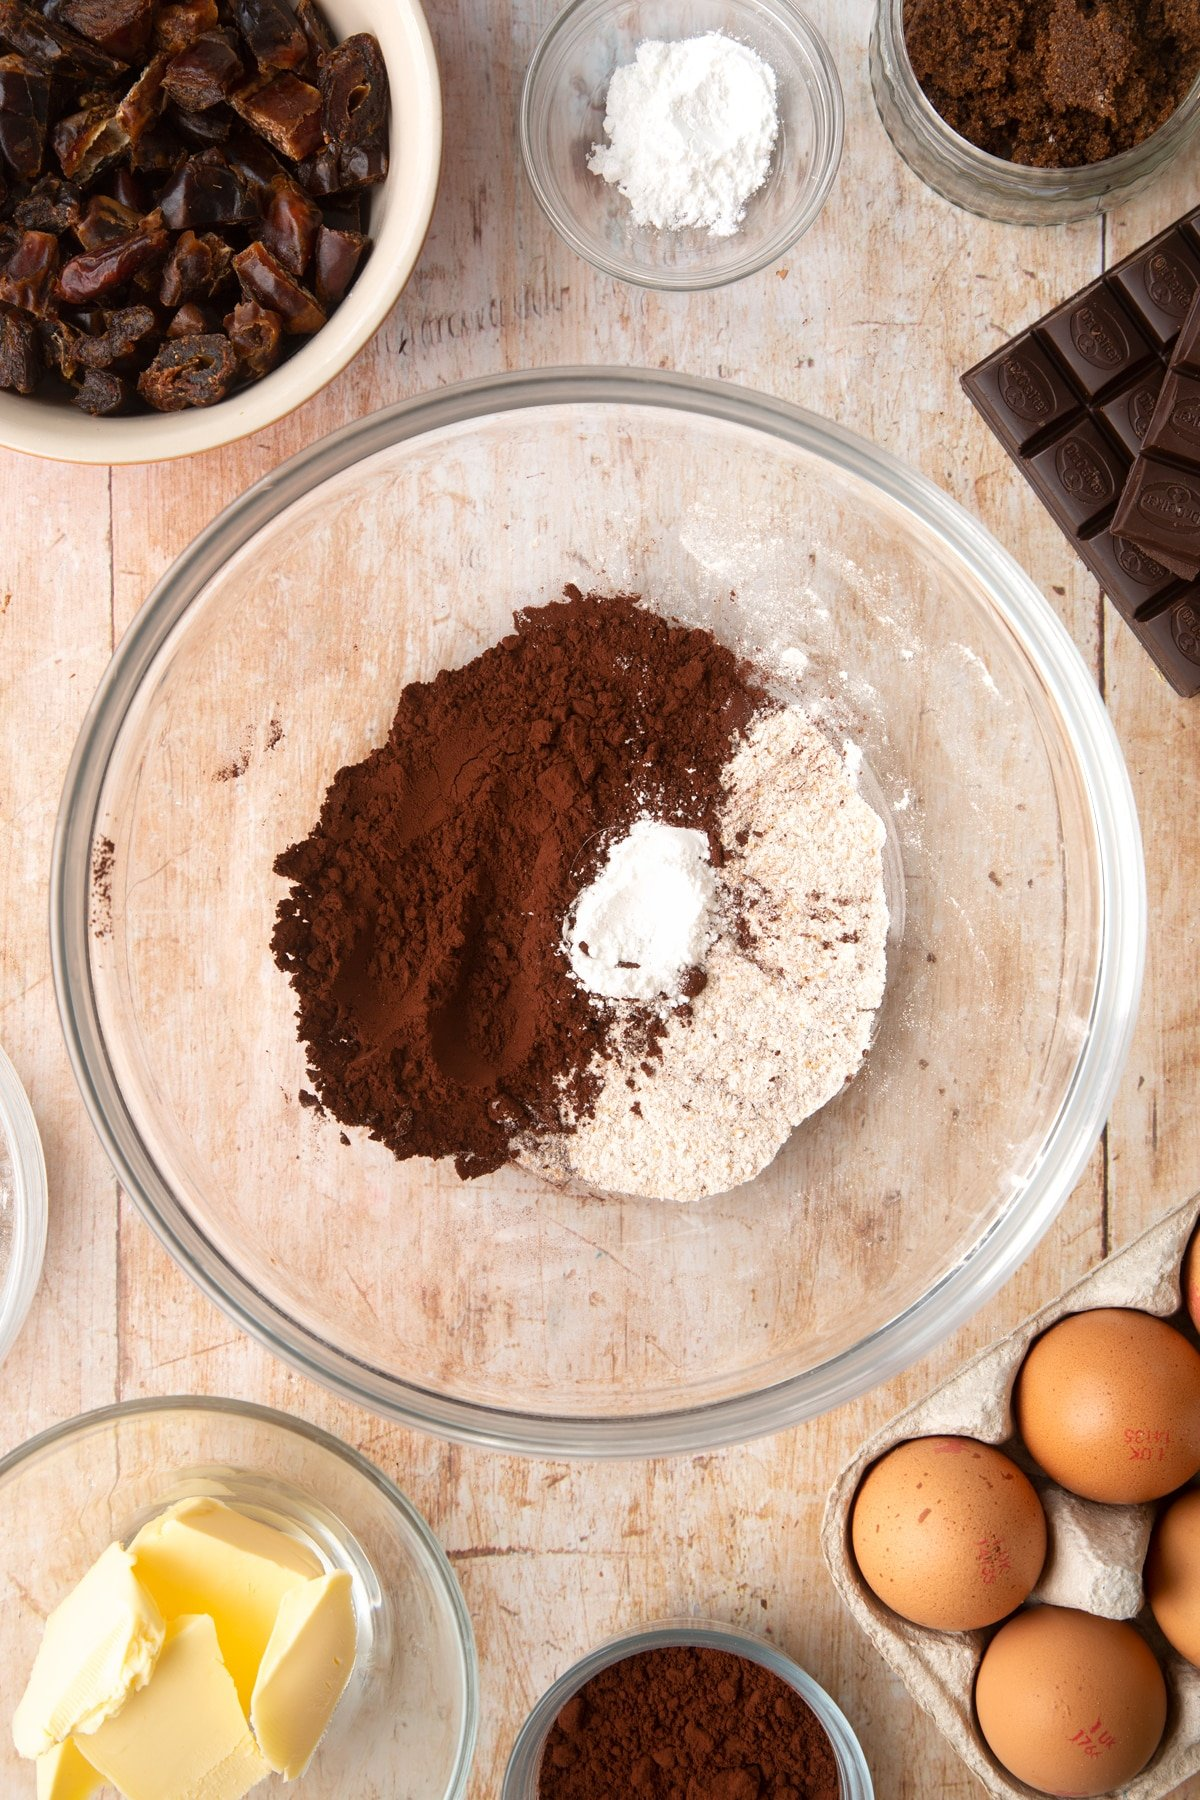 A mixing bowl containing cocoa, wholemeal flour and baking powder. Ingredients to make whole grain brownies surround the bowl.